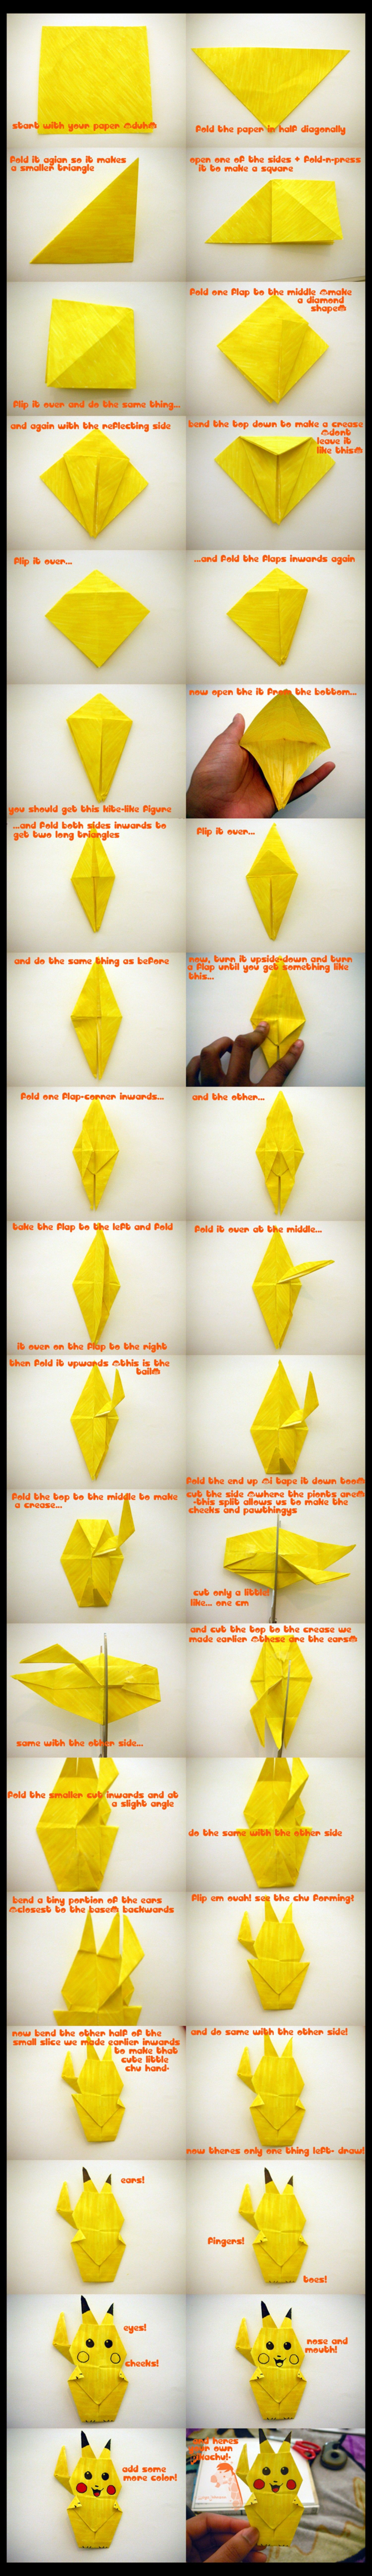 How To Make An Origami Pikachu Infographic Arts And Crafts Video Diagram Quotswan Quyetquot